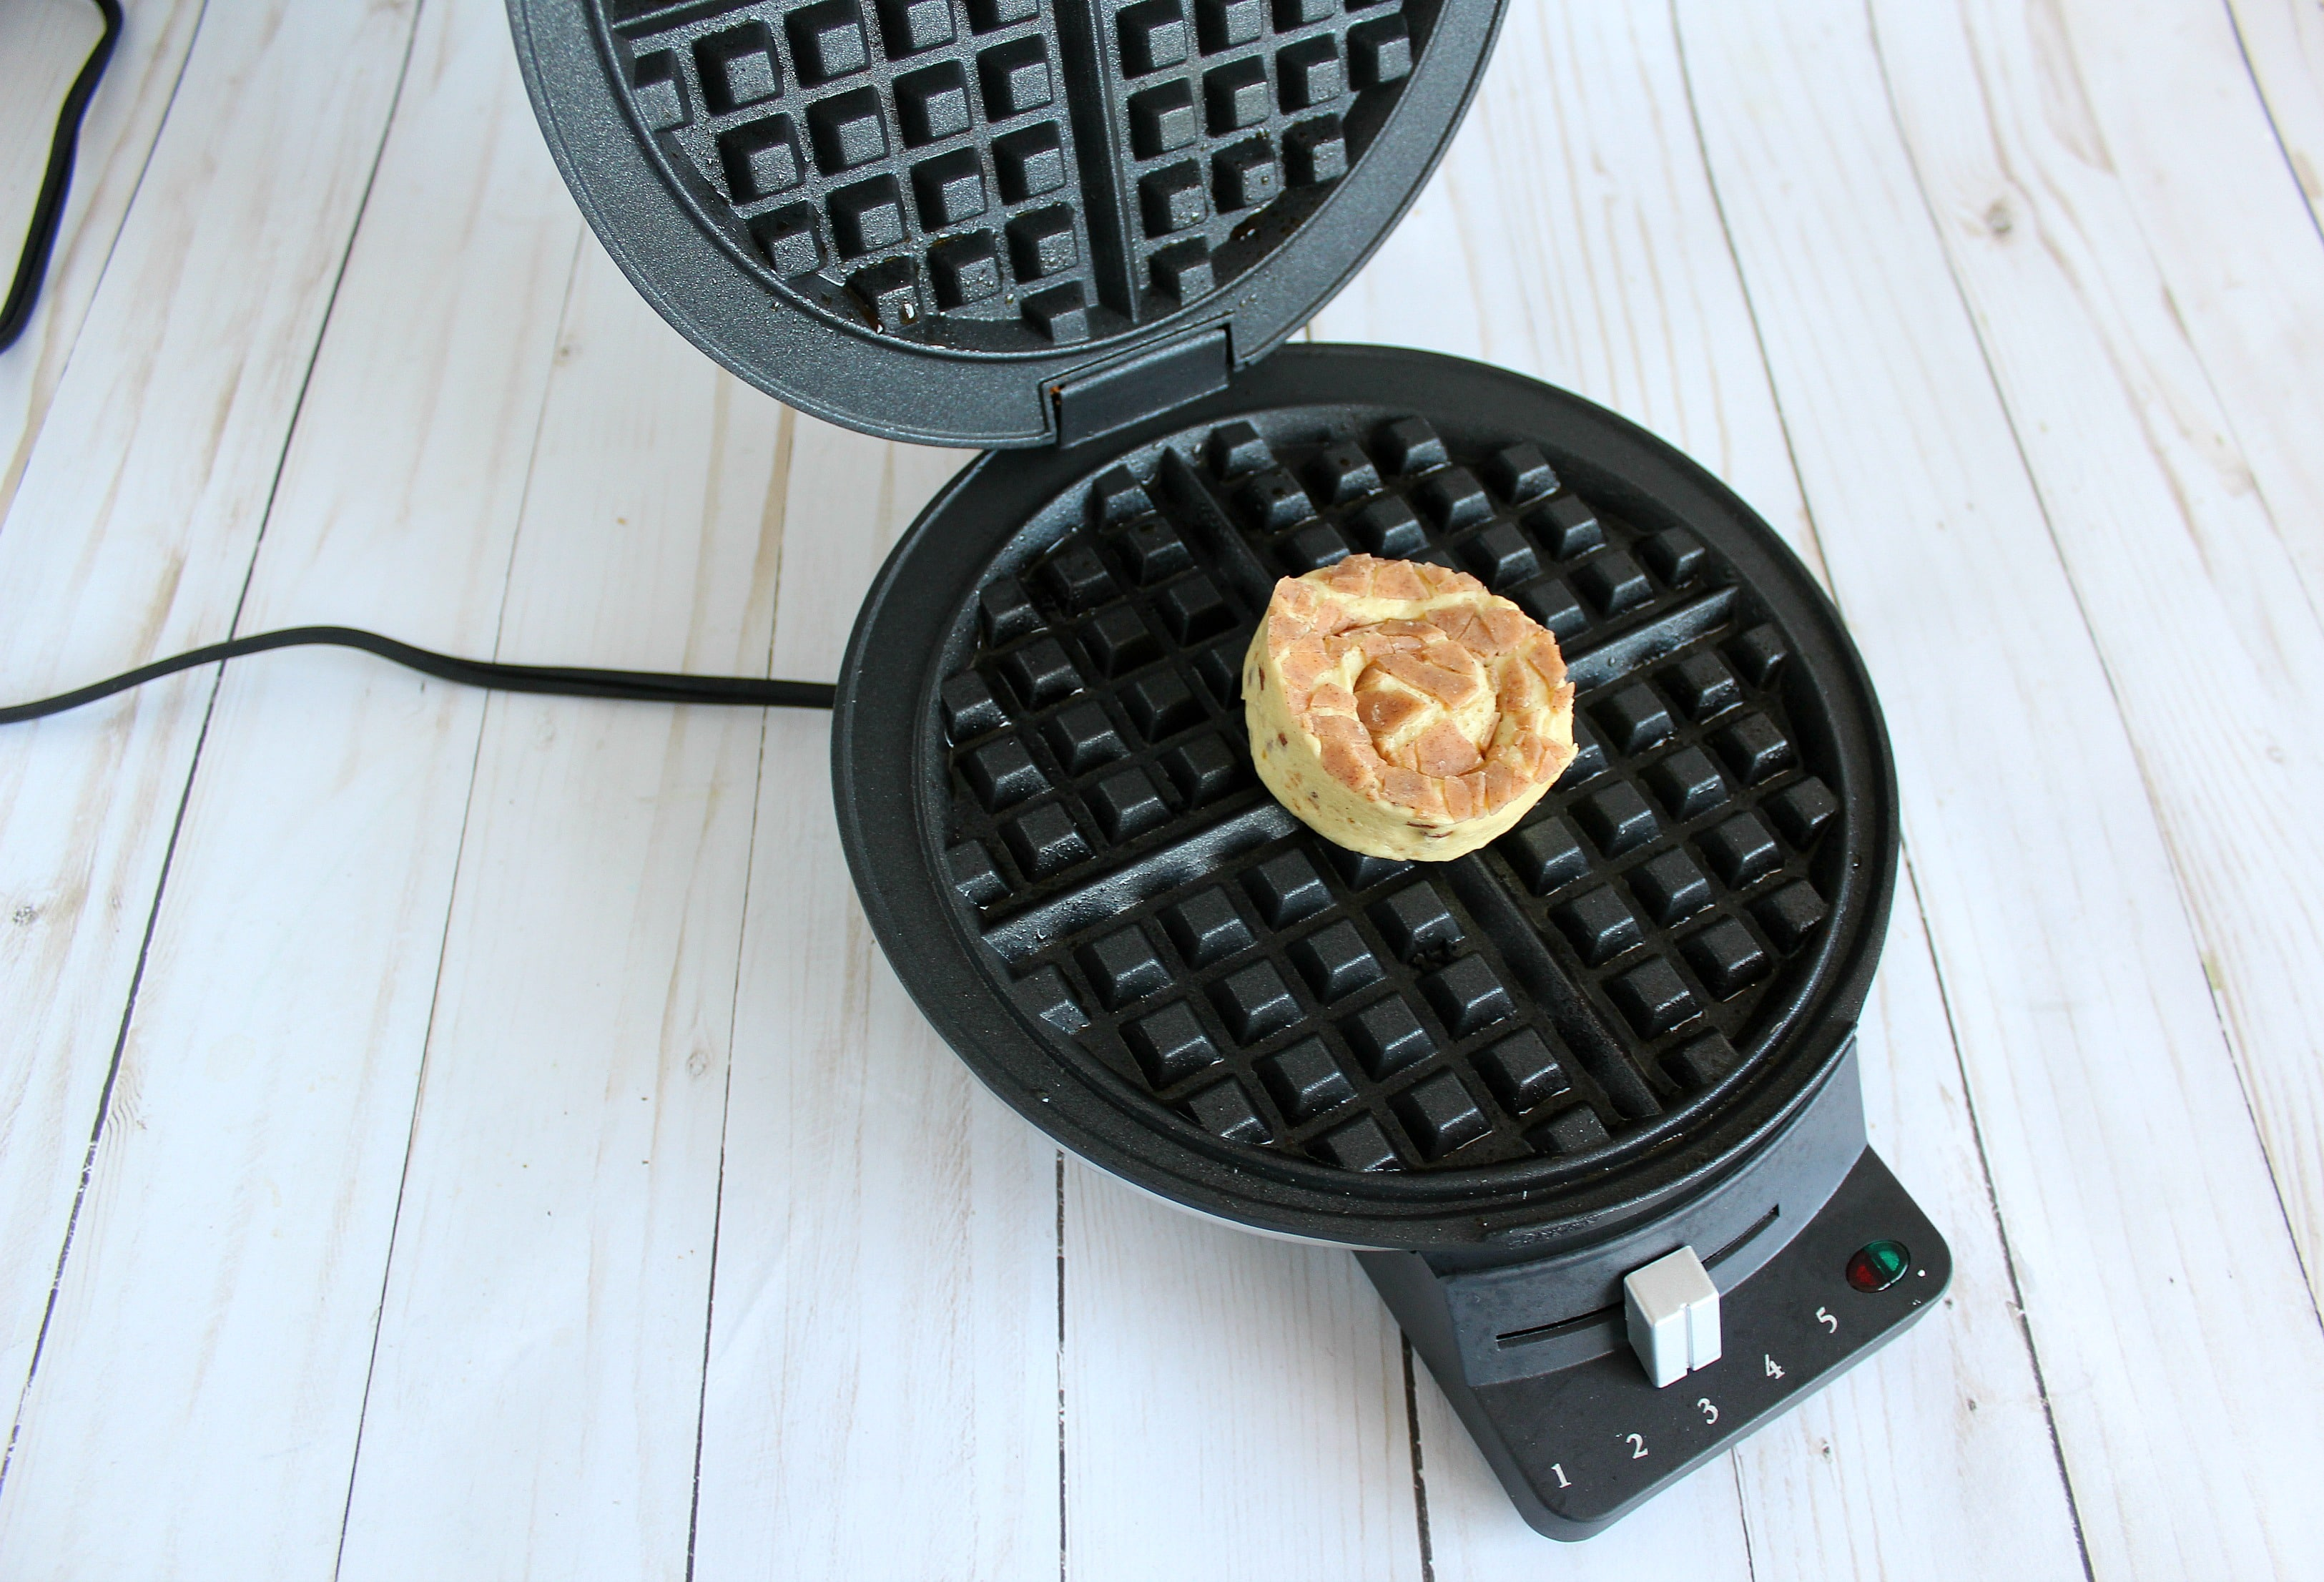 Cook one cinnamon roll in the waffle maker for about 5 minutes